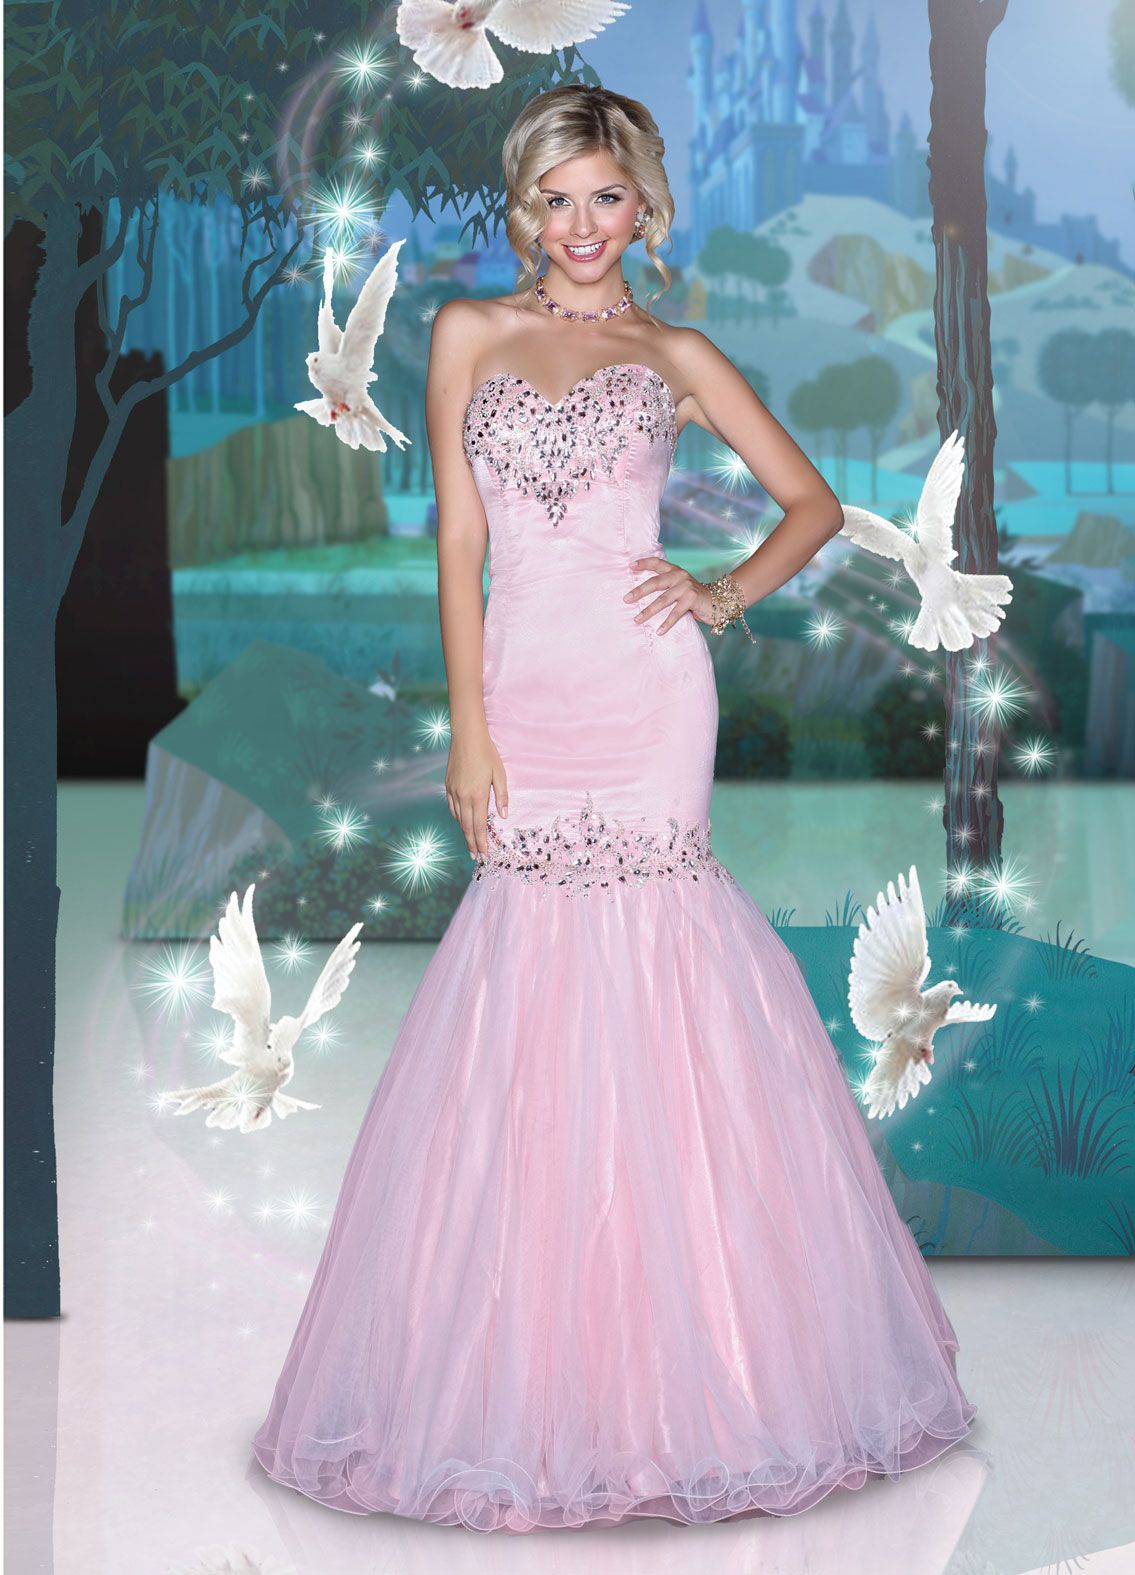 Disney Forever Enchanted Prom Dresses - comes in mint | Prom / semi ...